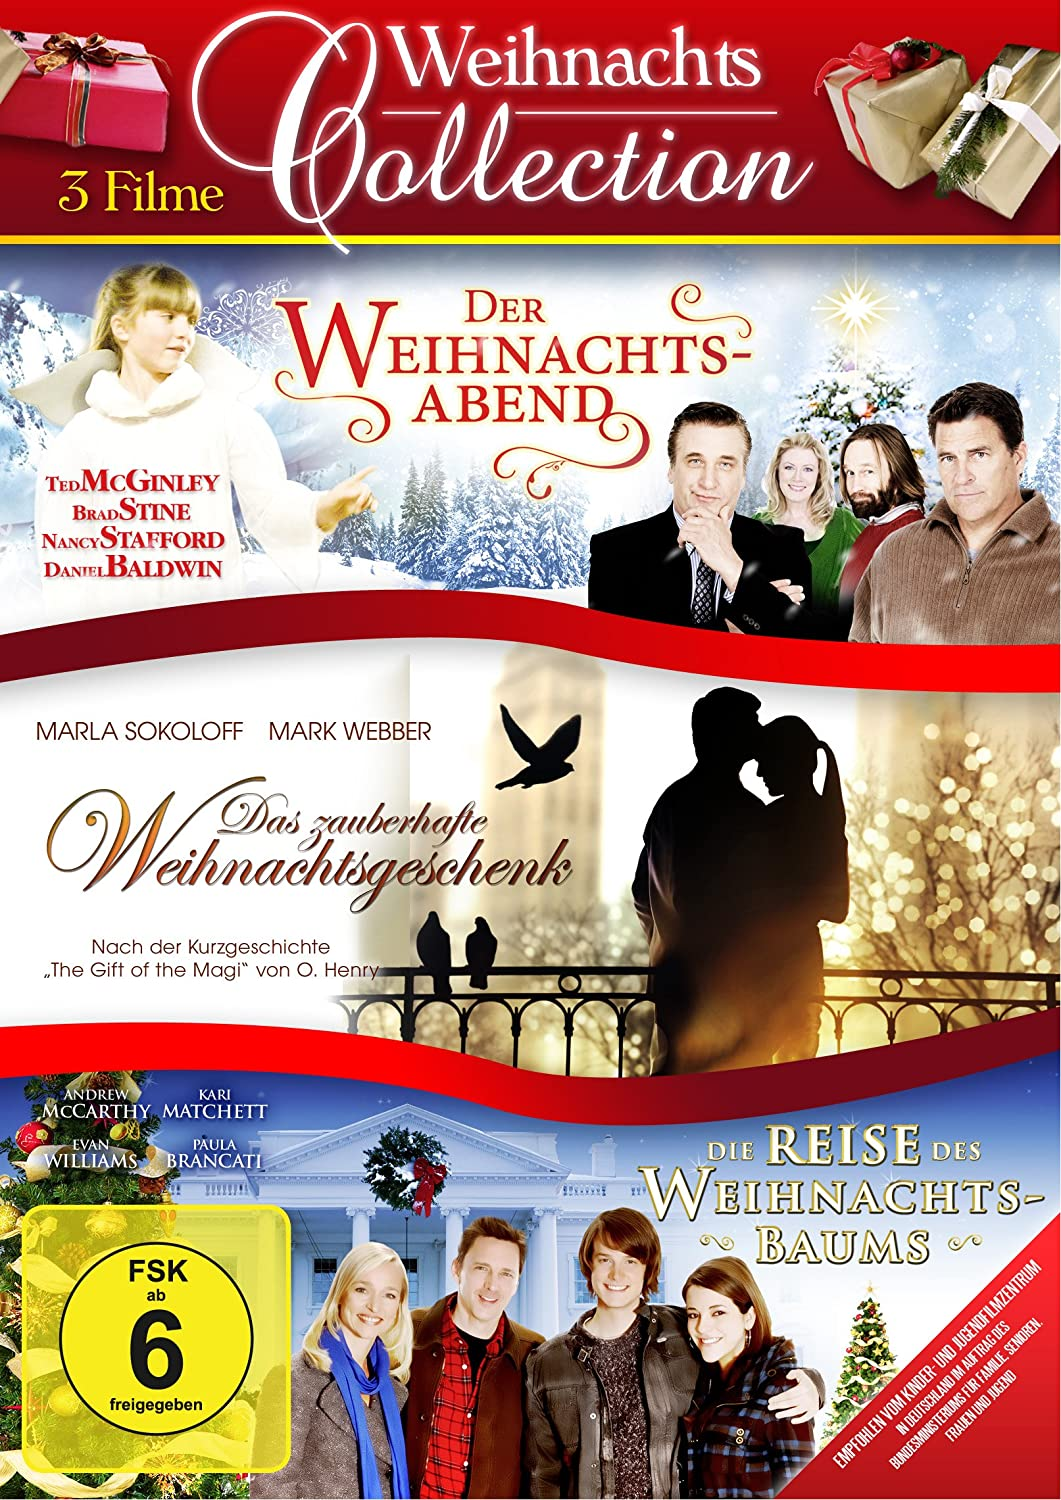 Weihnachts Collection - 3 Filme Edition [3 DVDs]: Amazon.it ...